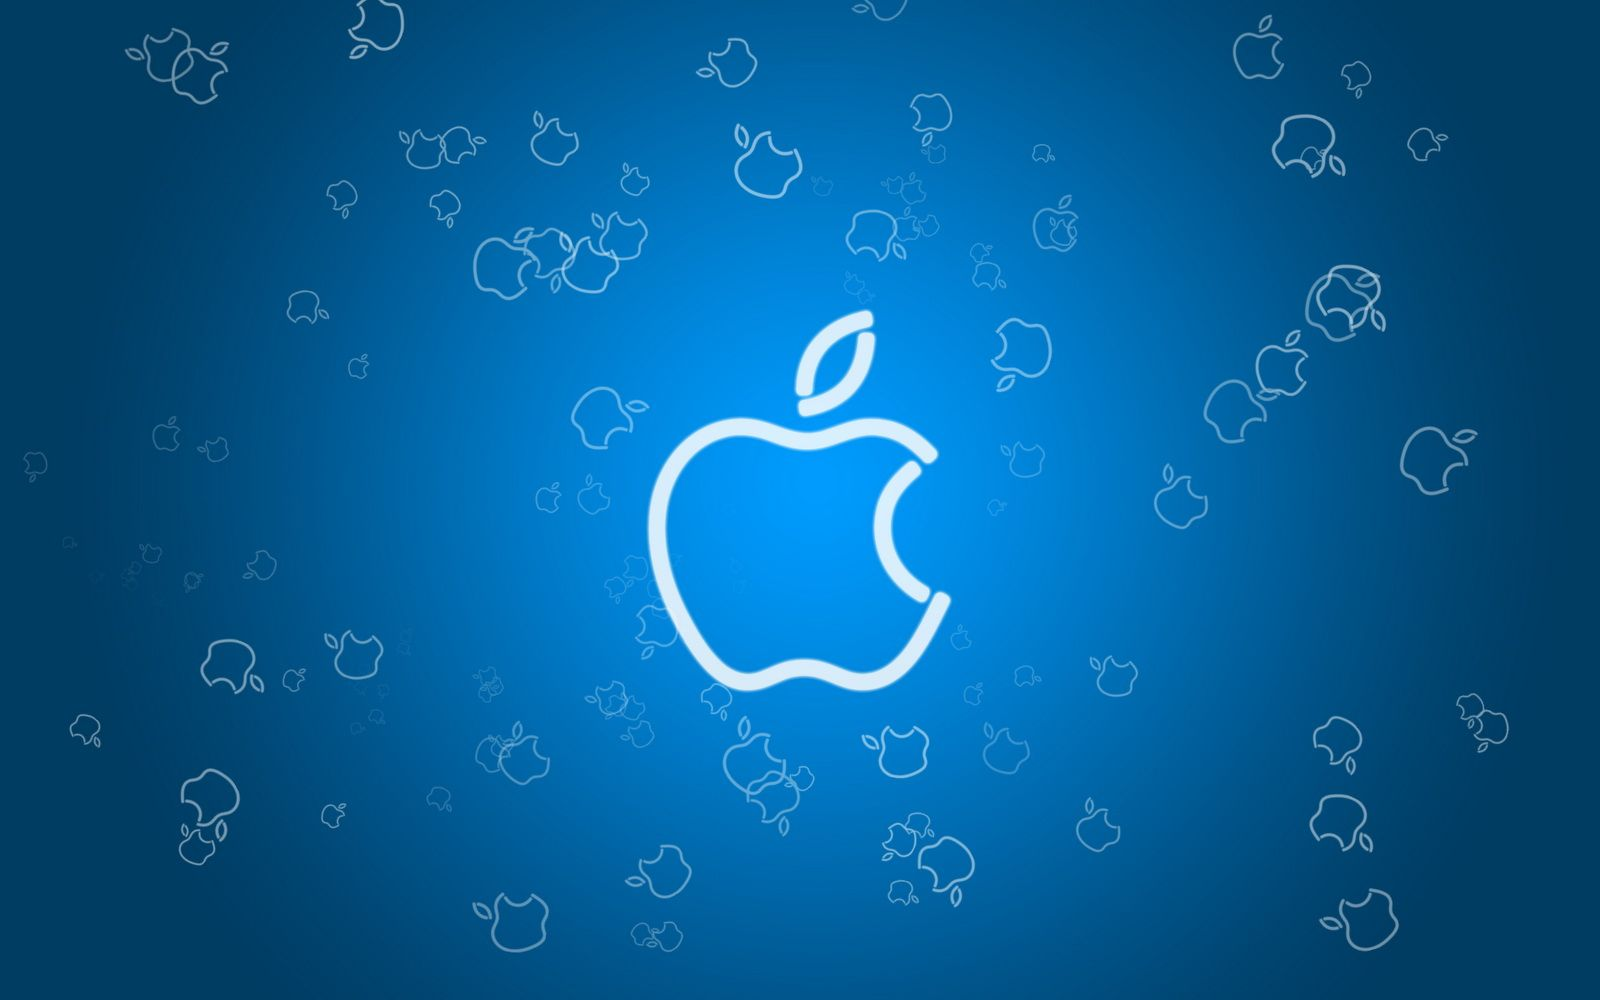 Hqfx Apple Fine Apple Wallpapers